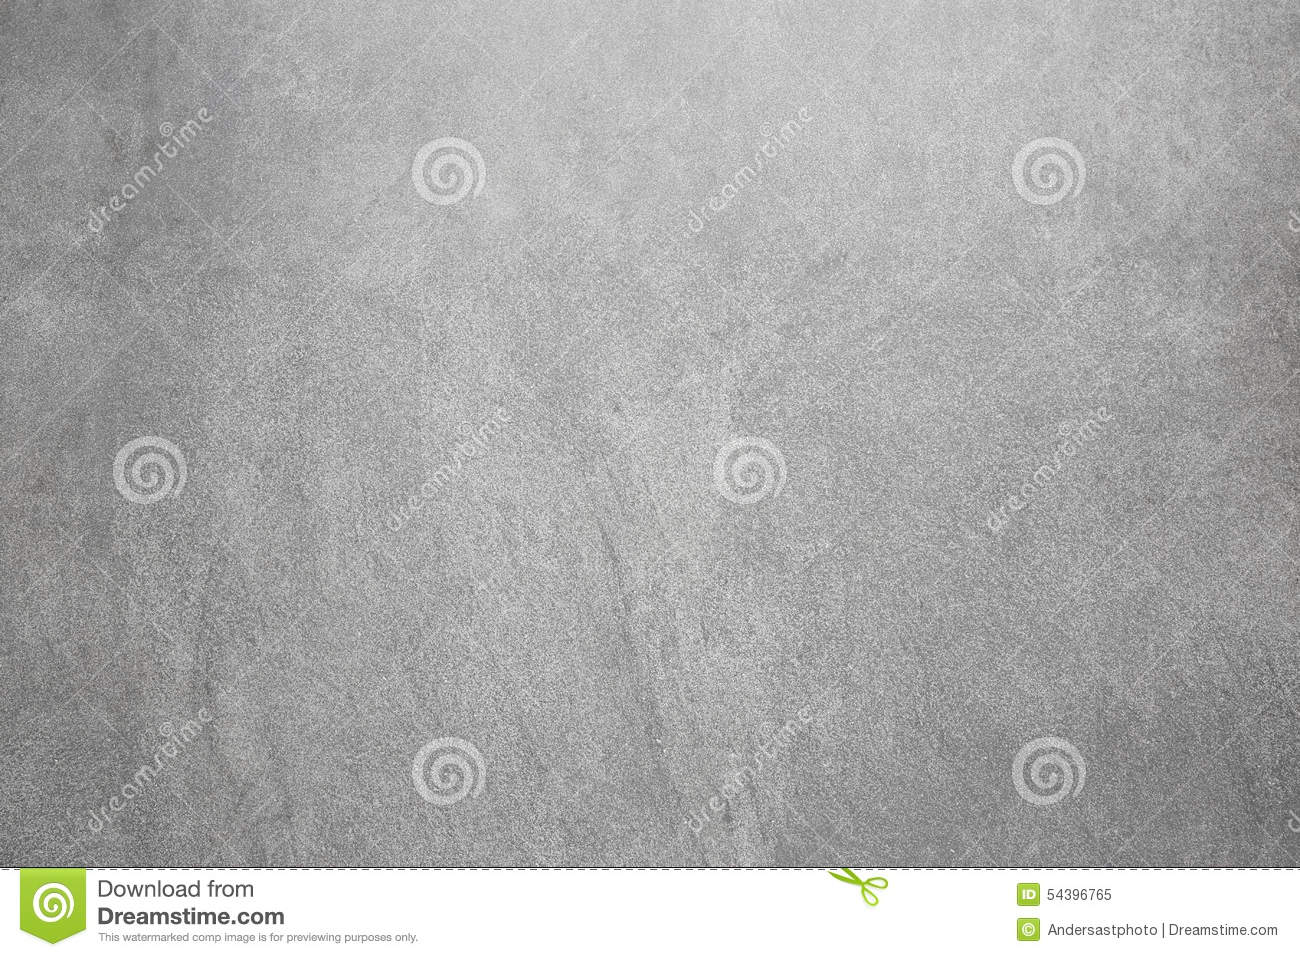 Gray concrete wall texture background